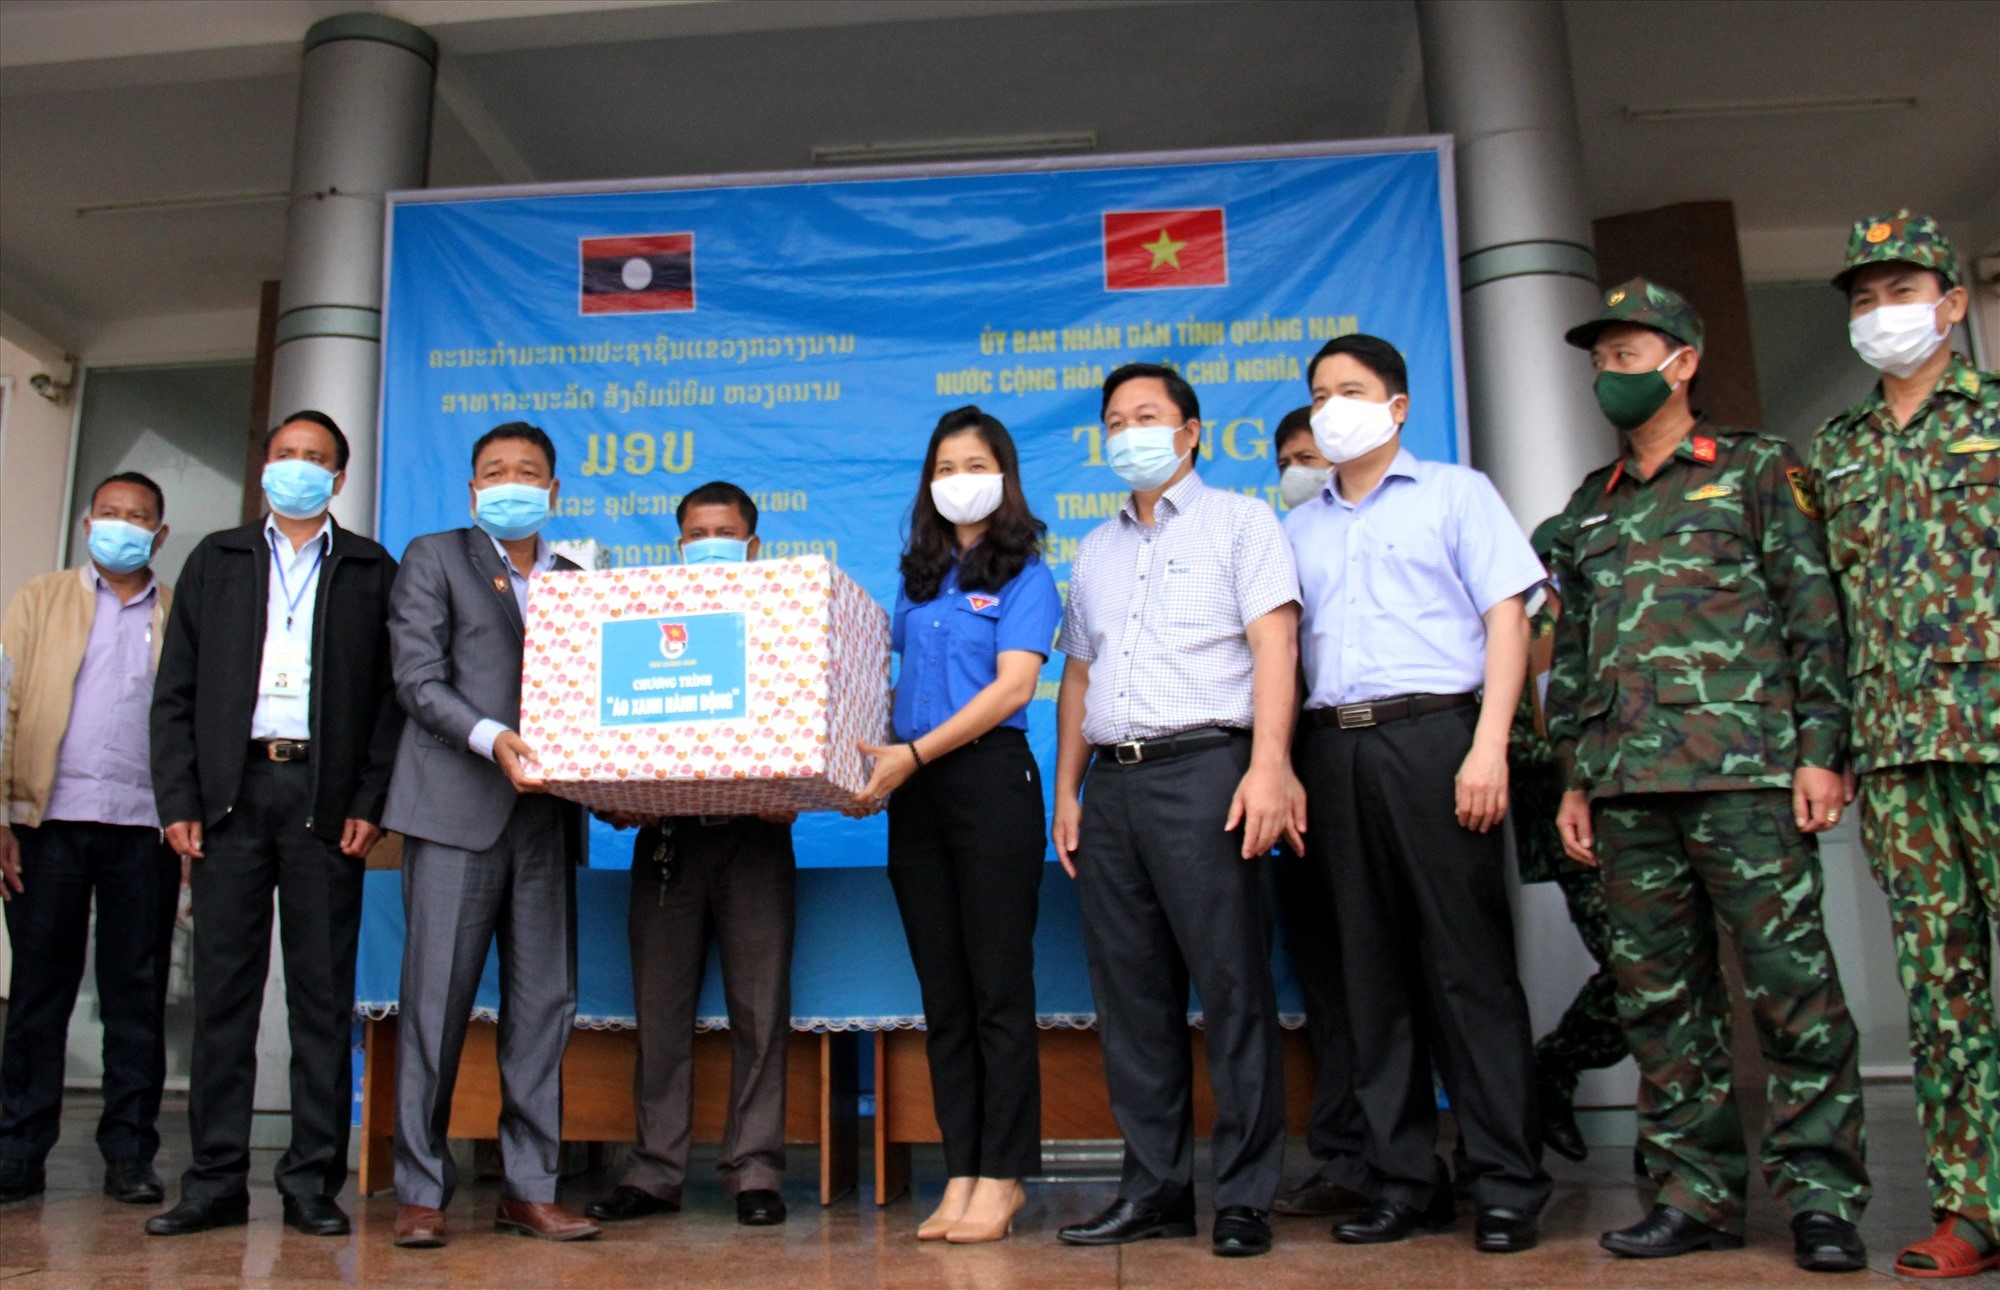 The ceremony of giving medical equipment donation